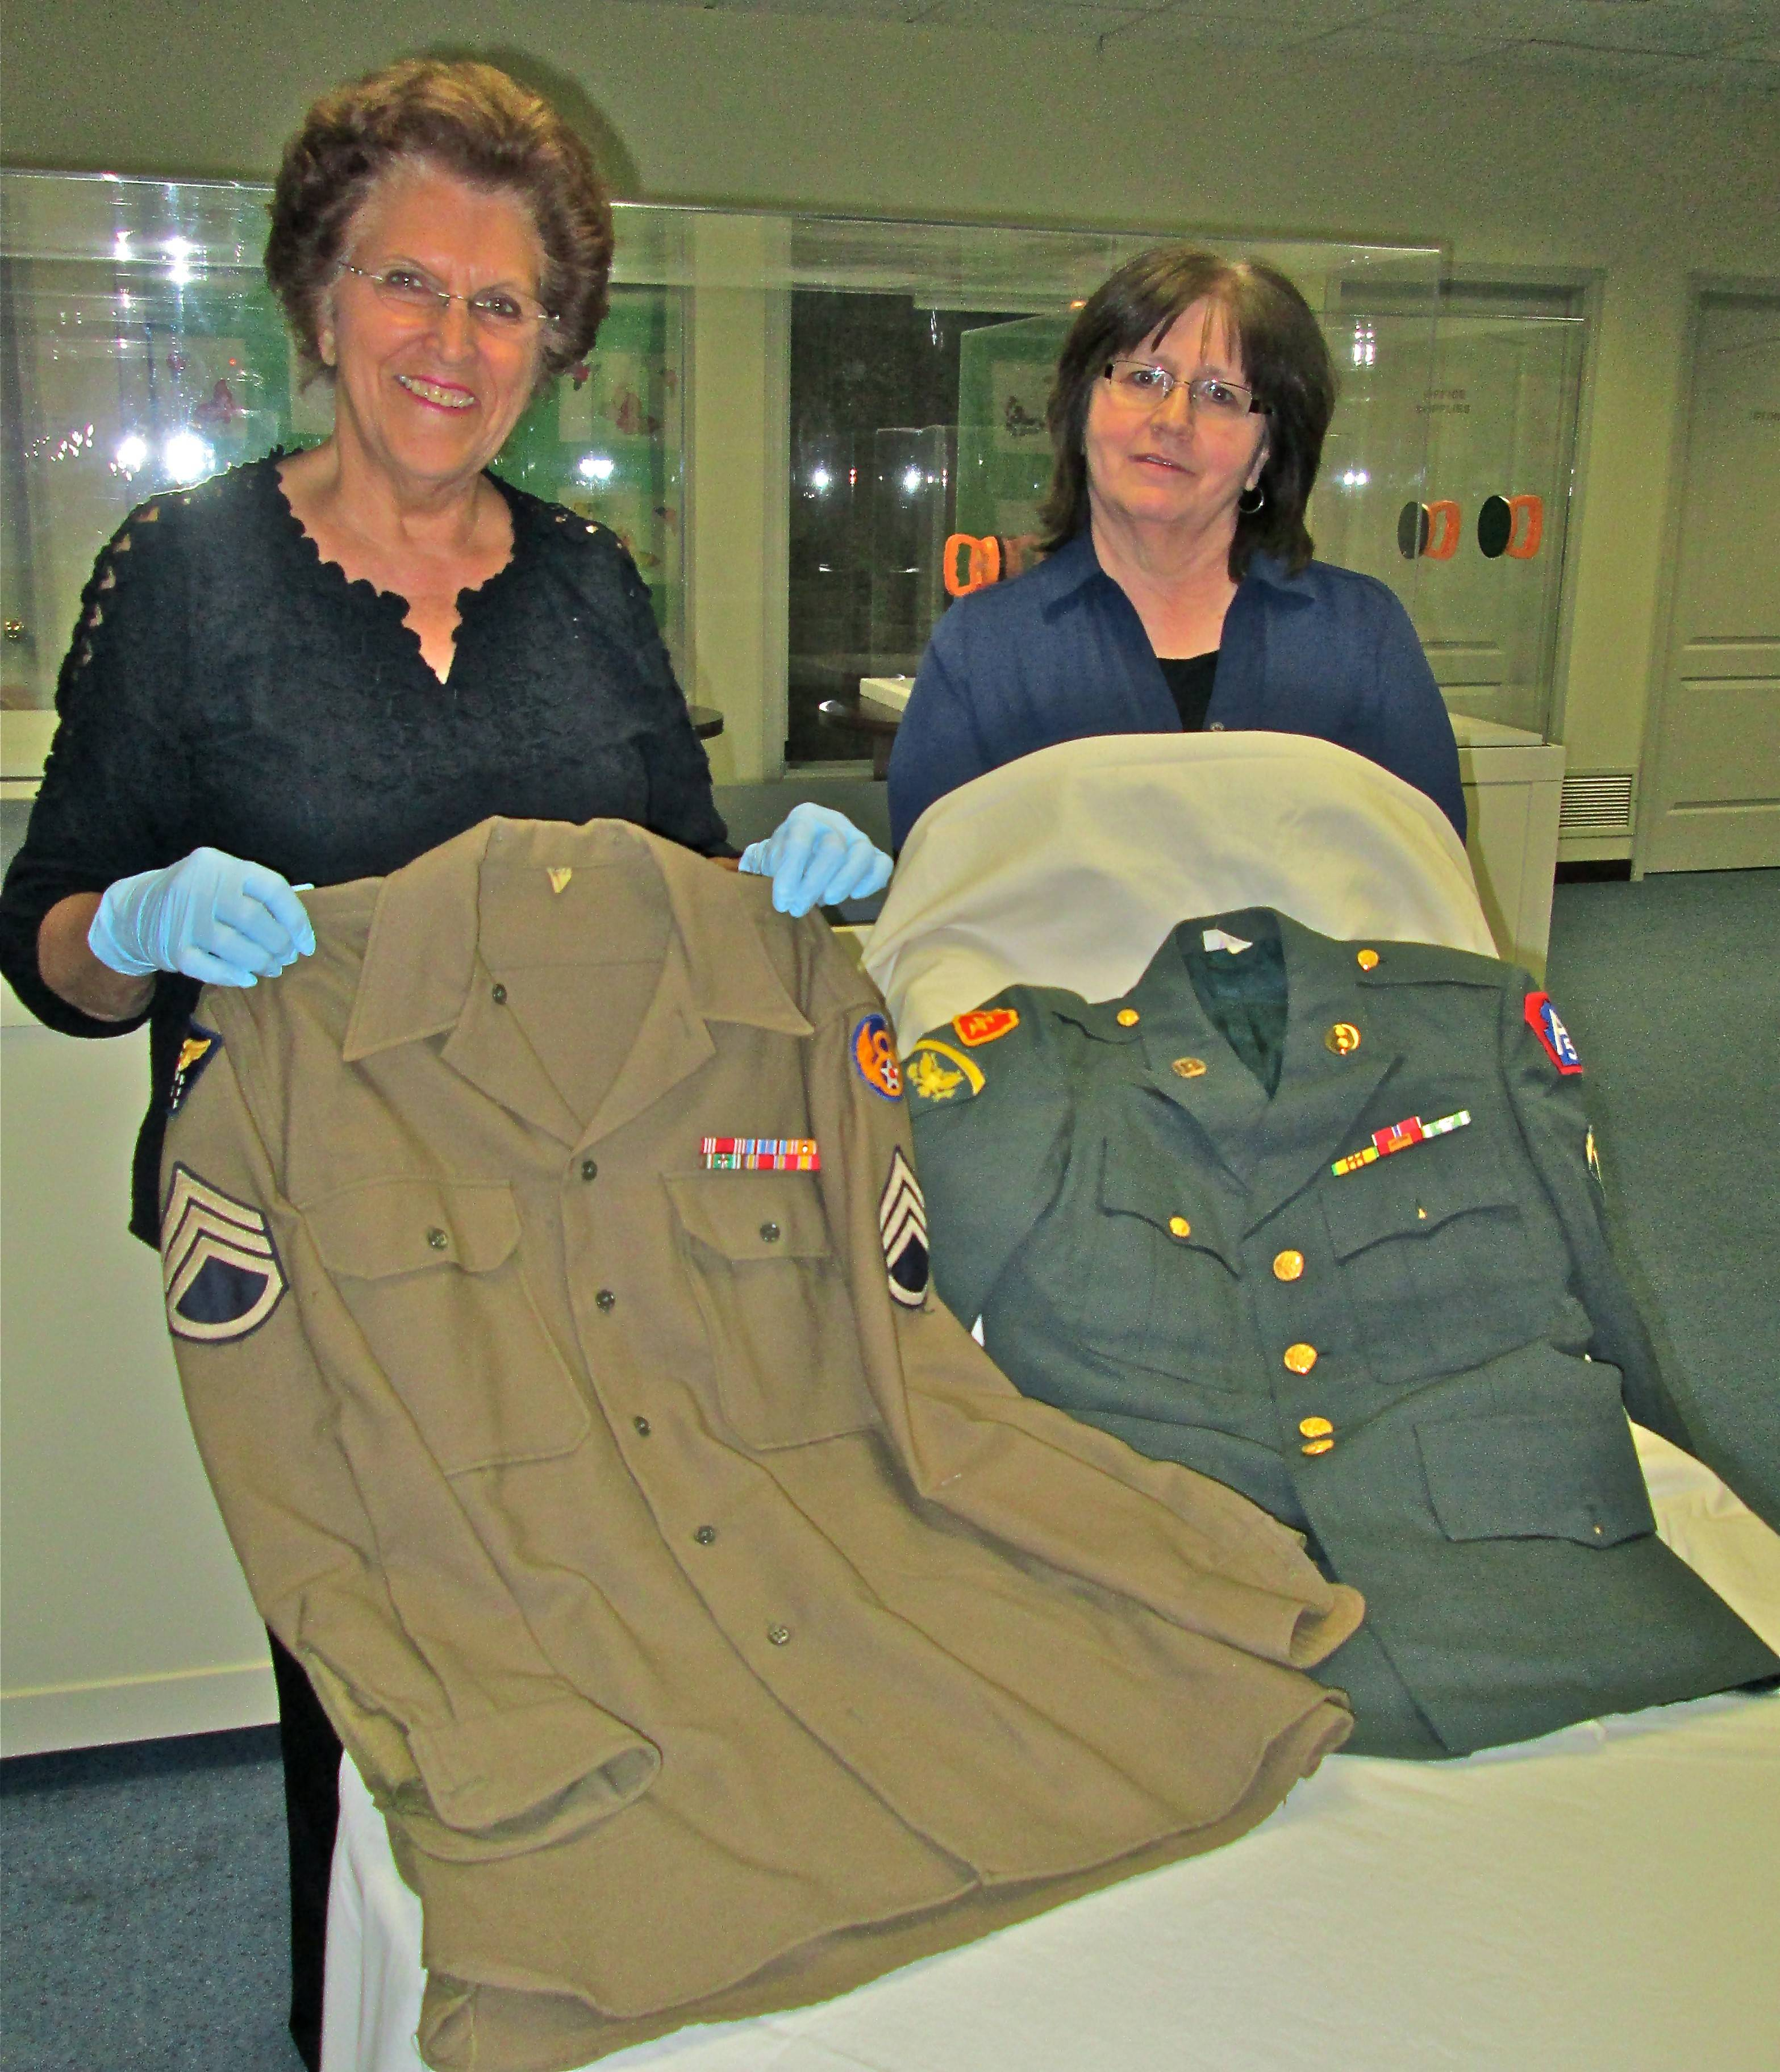 Glen Ellyn Historical Society's past president and curator, Ruth Wright, left, and Executive Director Jan Shupert-Arick prepare the Becker family's donation of military uniforms for exhibit on Memorial Day.